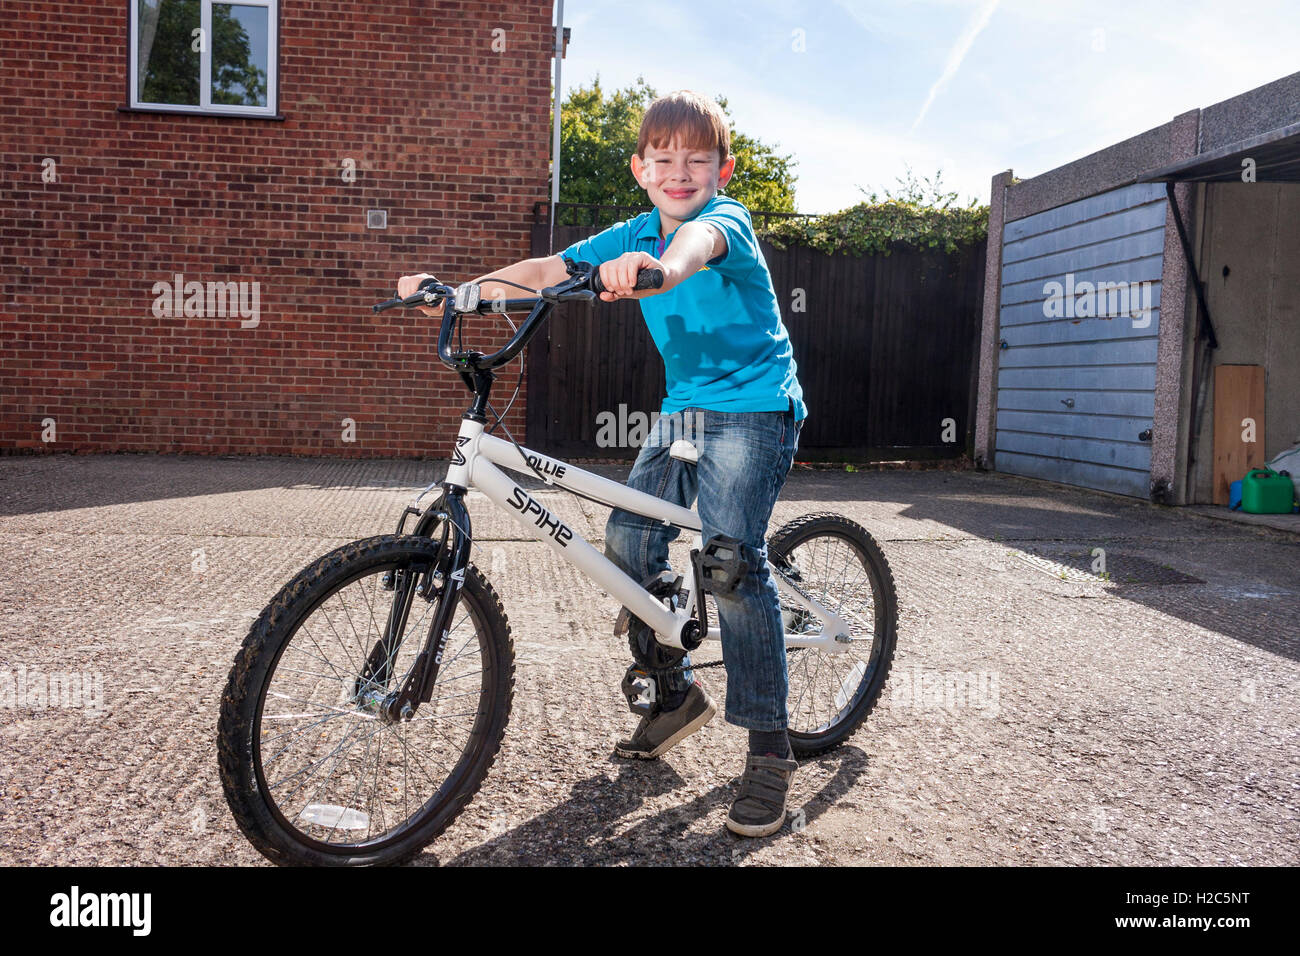 A young boy sat on a BMX bicycle outside on a sunny day wearing a bright blue Beaver Scout uniform shirt - Stock Image